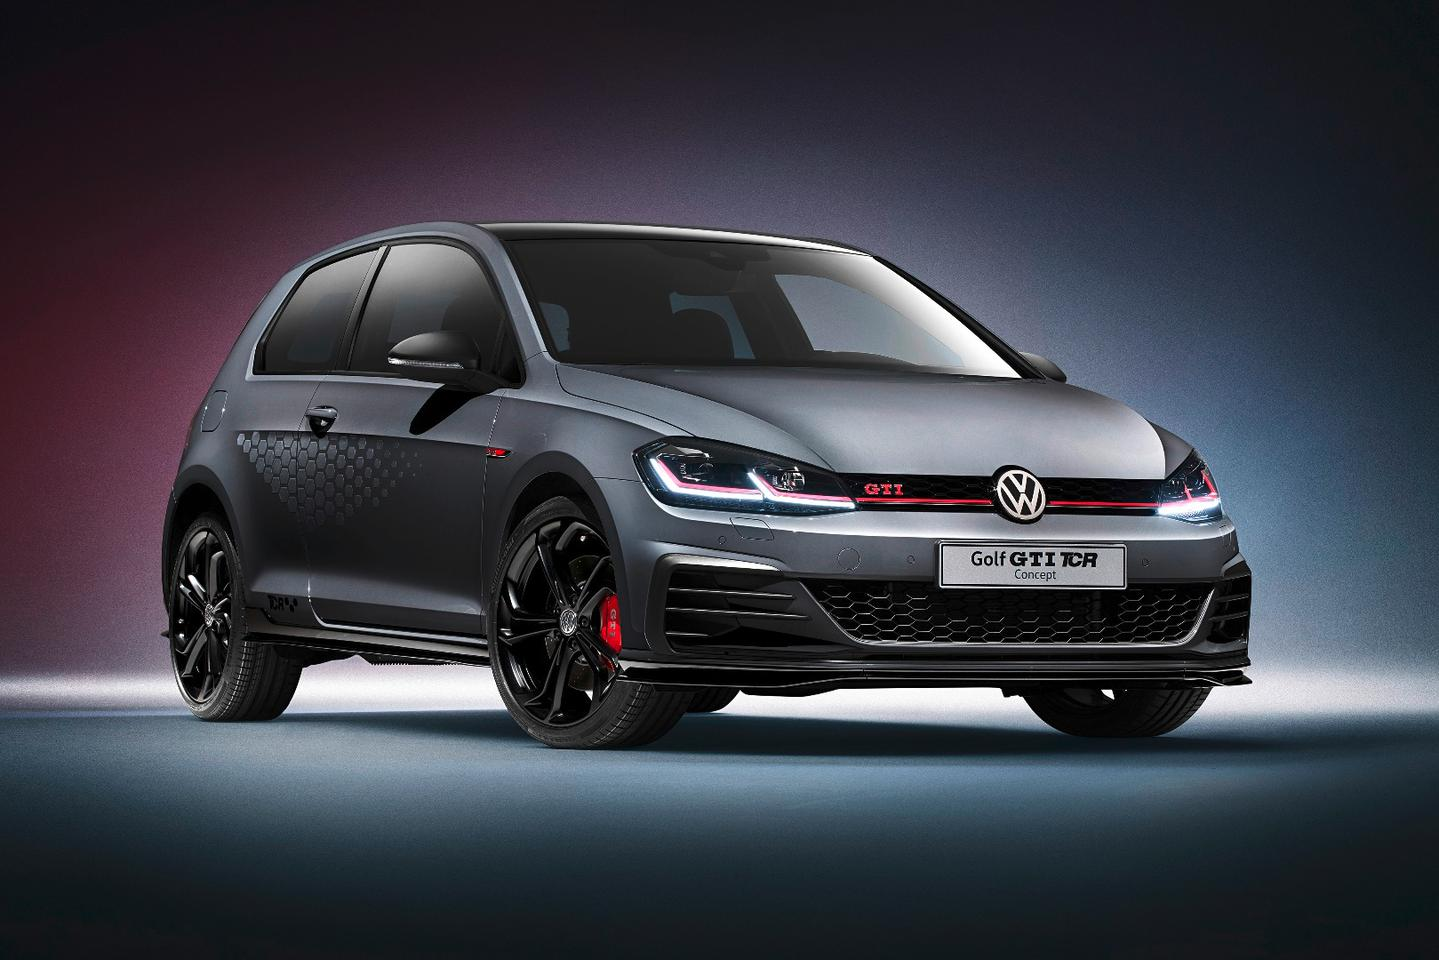 Volkswagen says the latest incarnation of its storied hot hatch is almost ready to roll, and is expected to enter production at the end of 2018